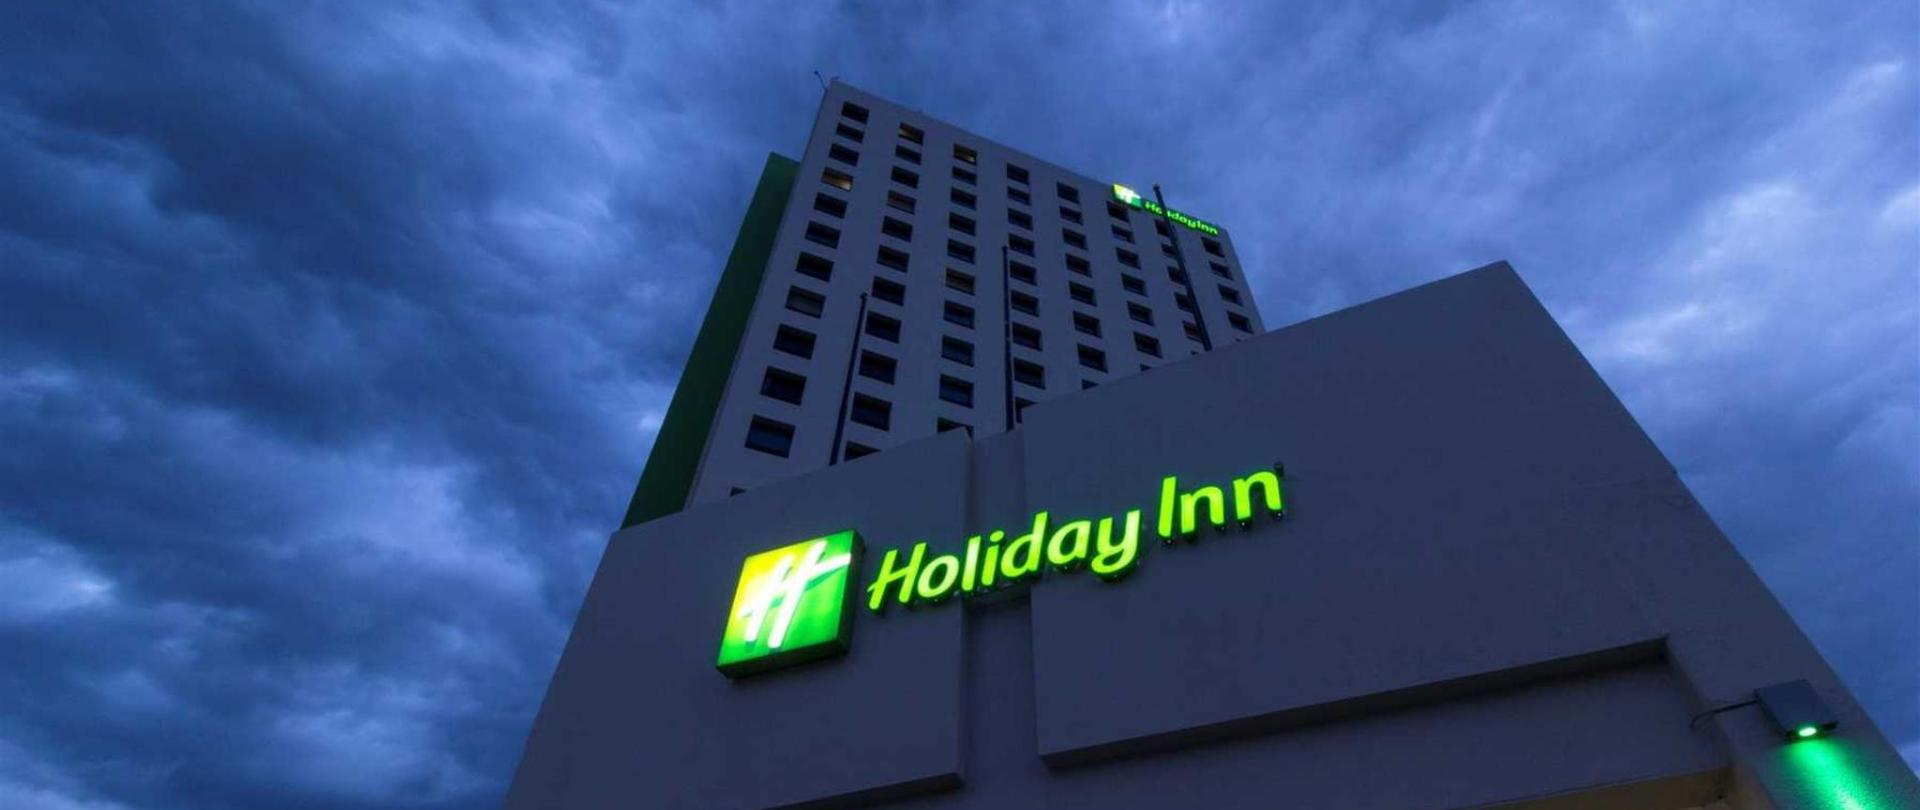 Holiday Inn® Puebla La Noria, Puebla, Mexico.jpg